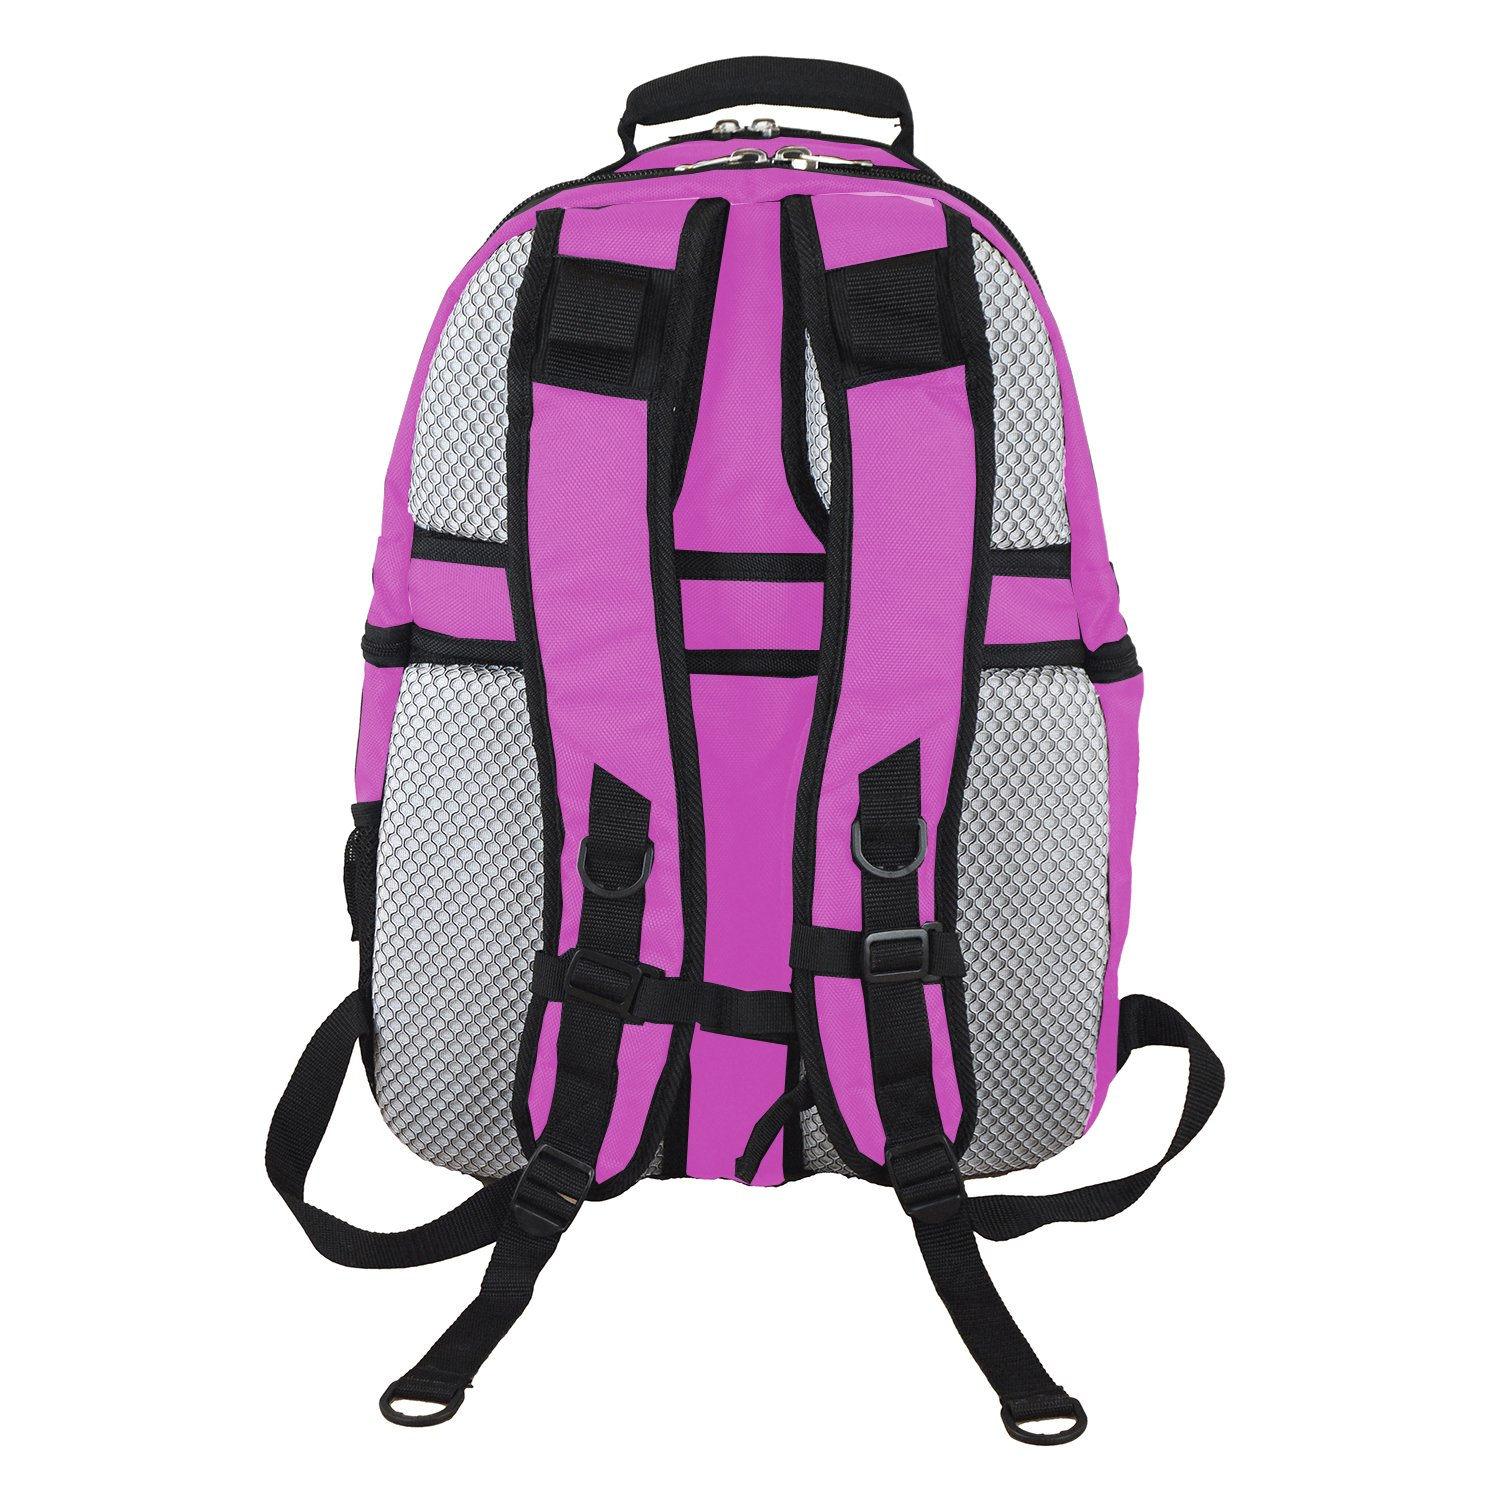 NBA Boston Celtics Voyager Laptop Backpack, 19-inches, Pink by Denco (Image #4)